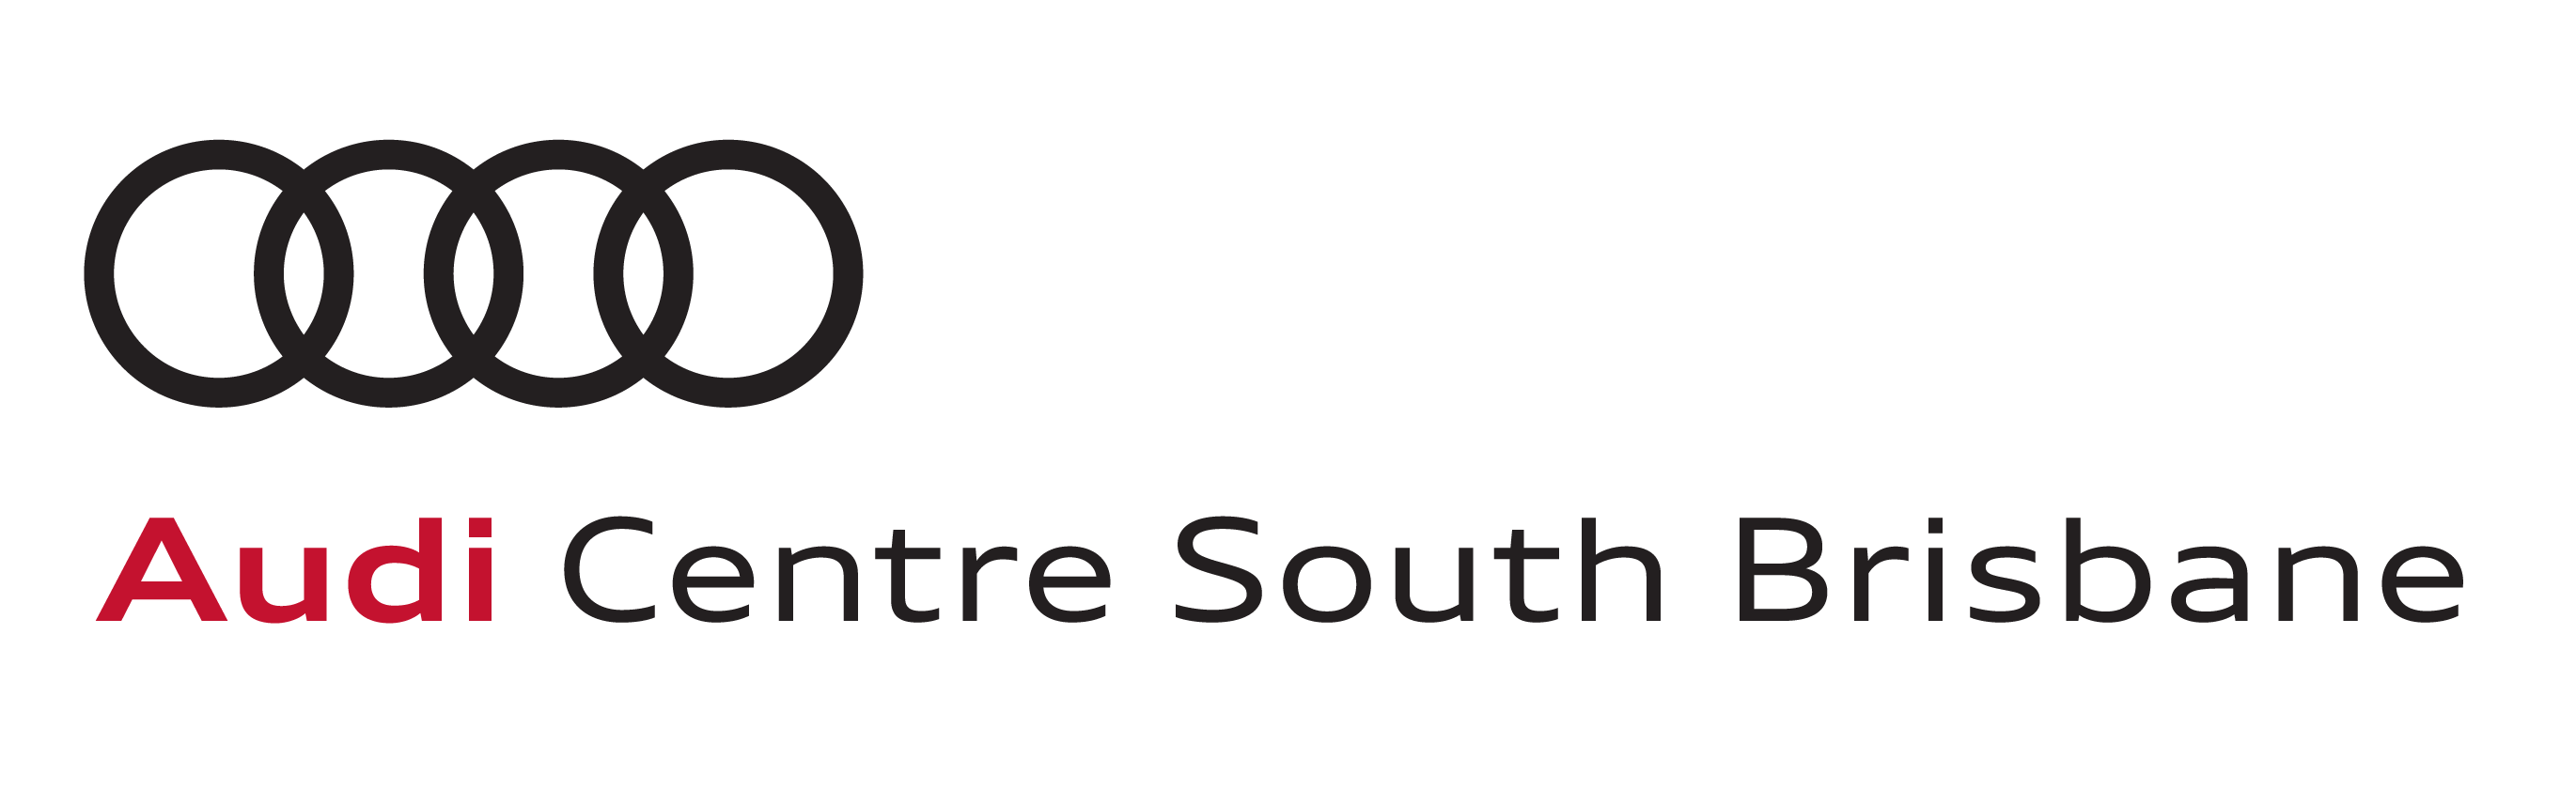 Audi Centre South Brisbane logo